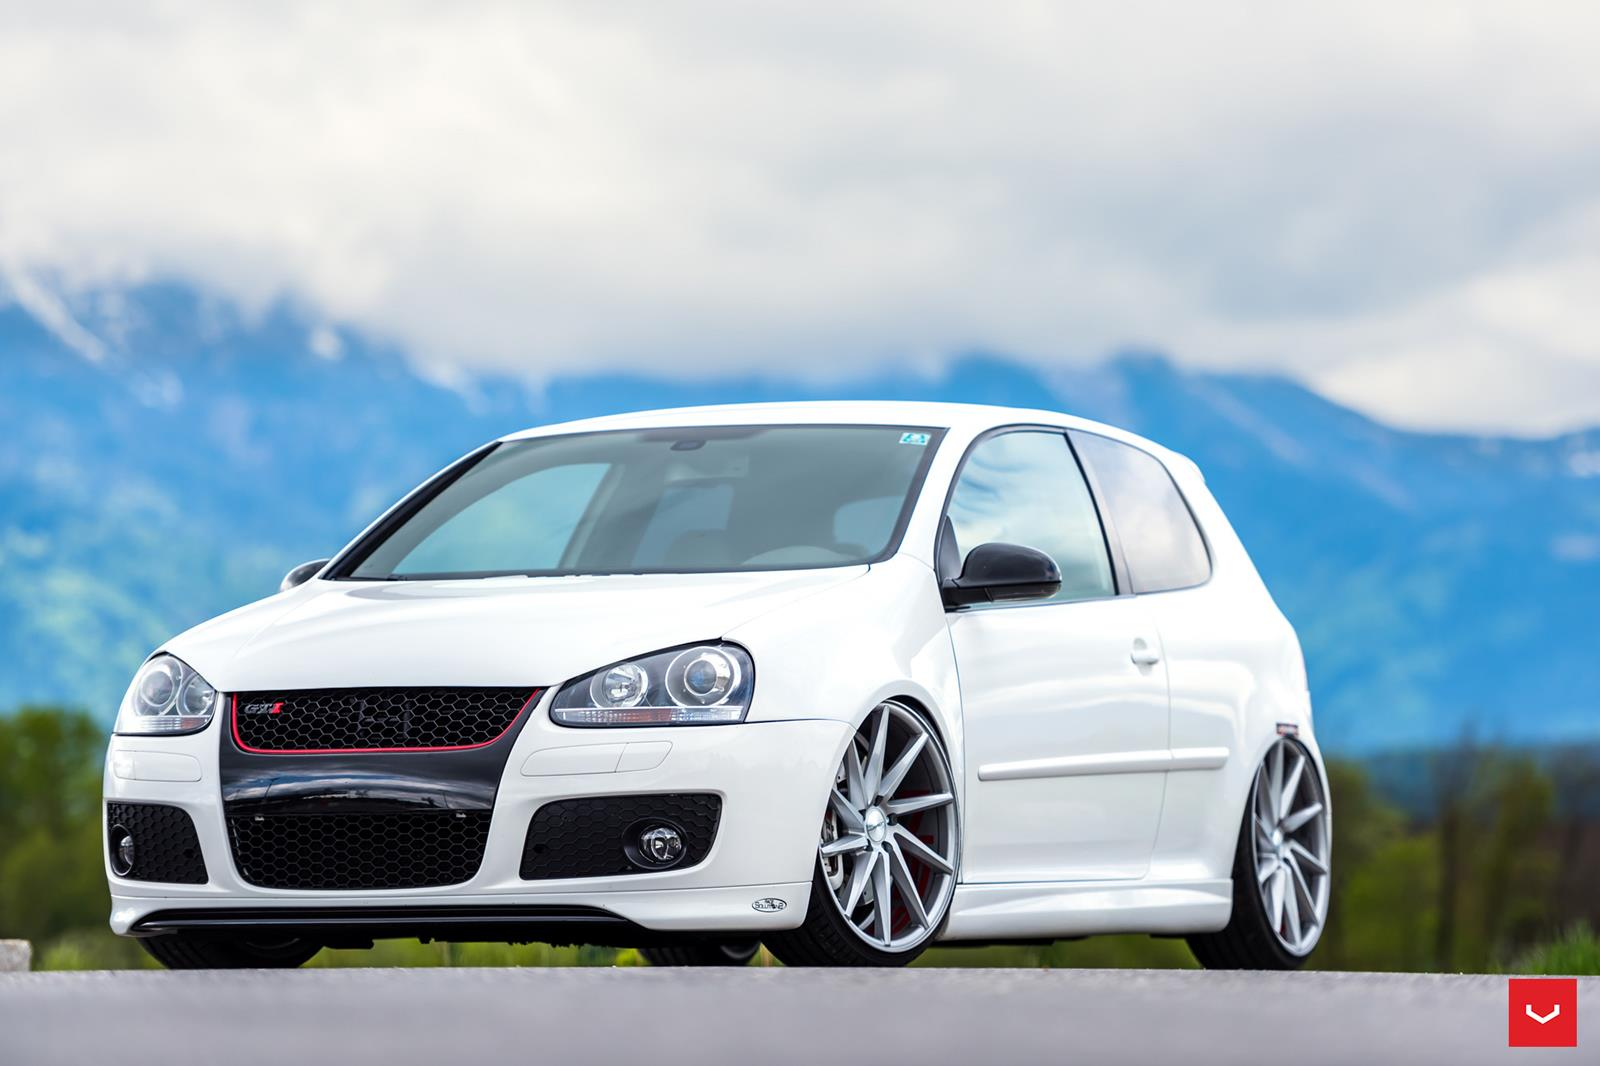 vw golf mk5tuning pictures. Black Bedroom Furniture Sets. Home Design Ideas